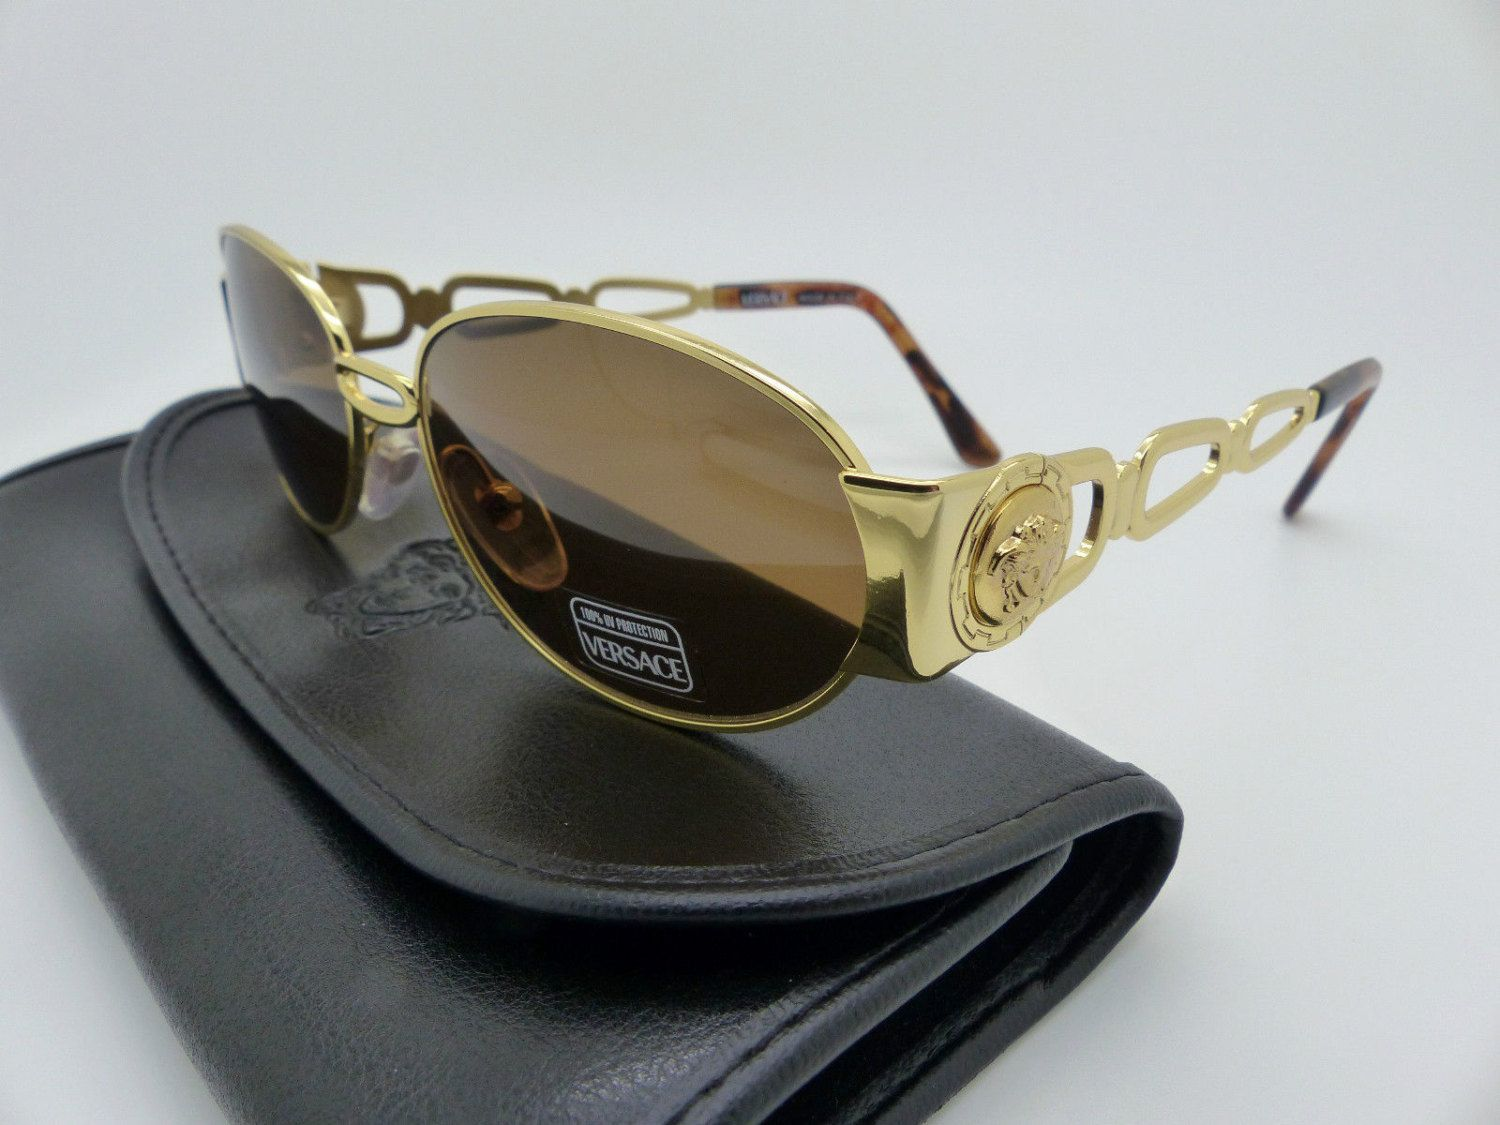 4aeb37ade5e4 Genuine Rare Vintage Gianni Versace Medusa Sunglasses Mod S32 Col 030 by  VSOx on Etsy